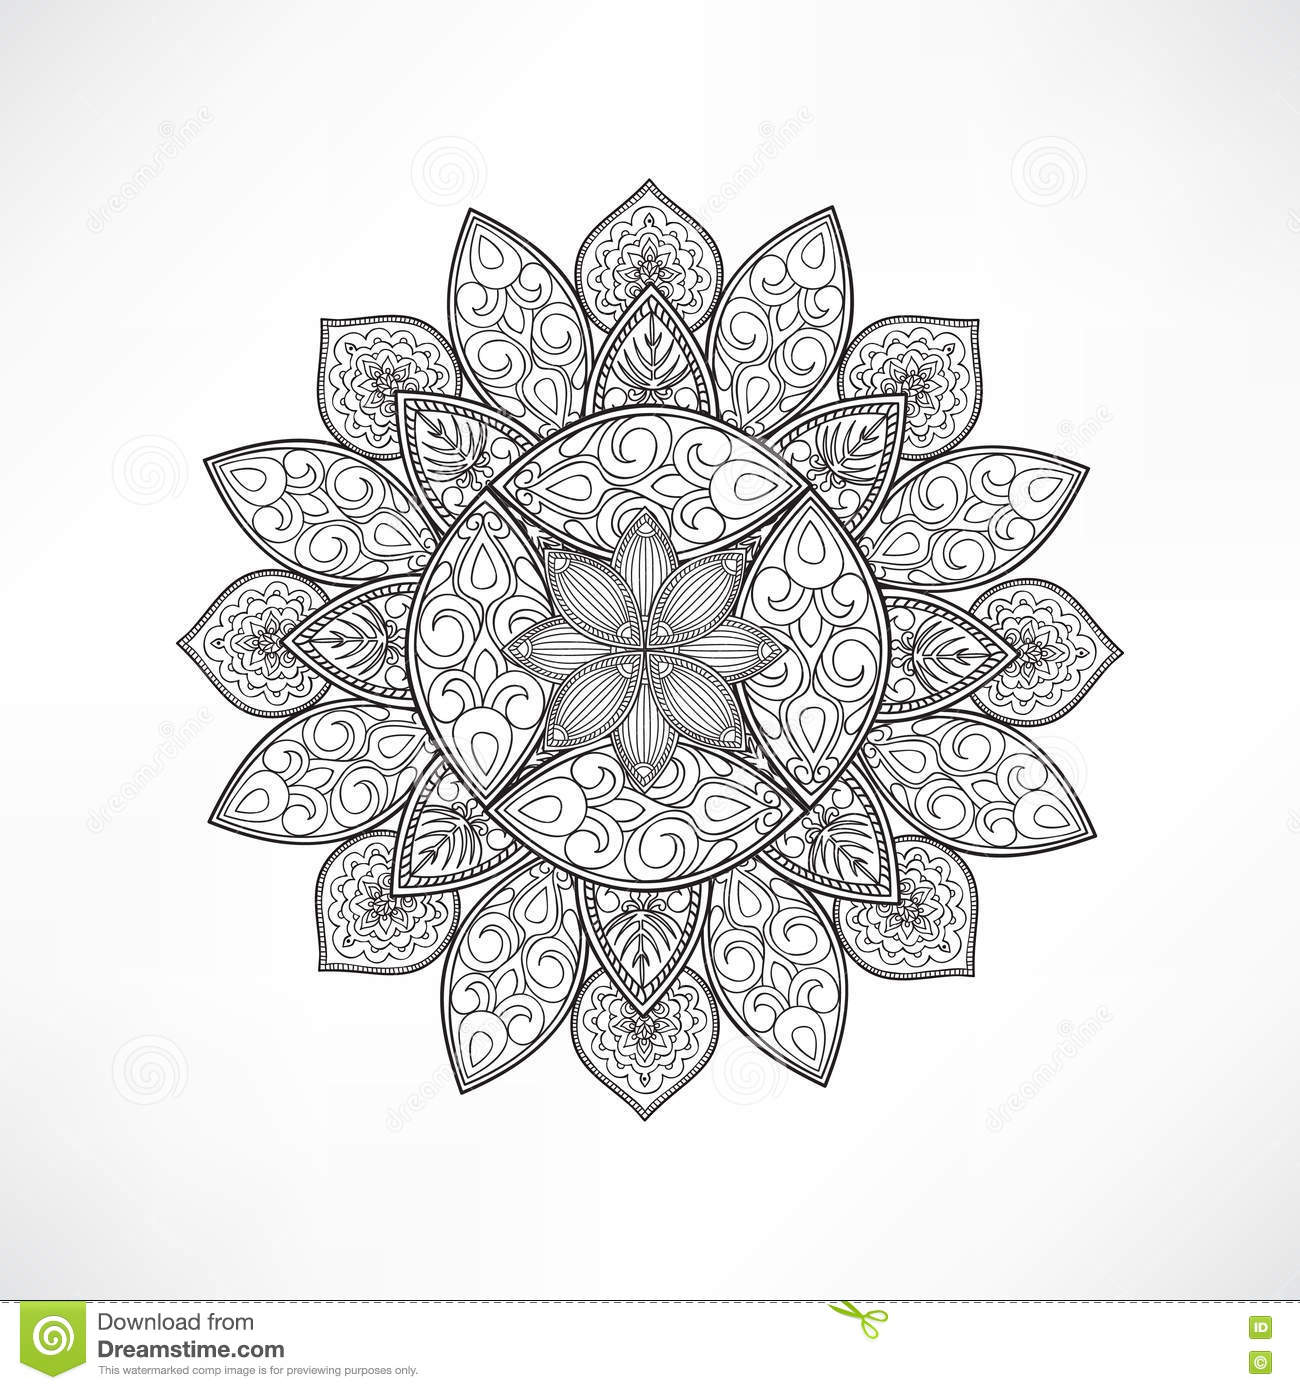 intricate geometric coloring pages - photo#22